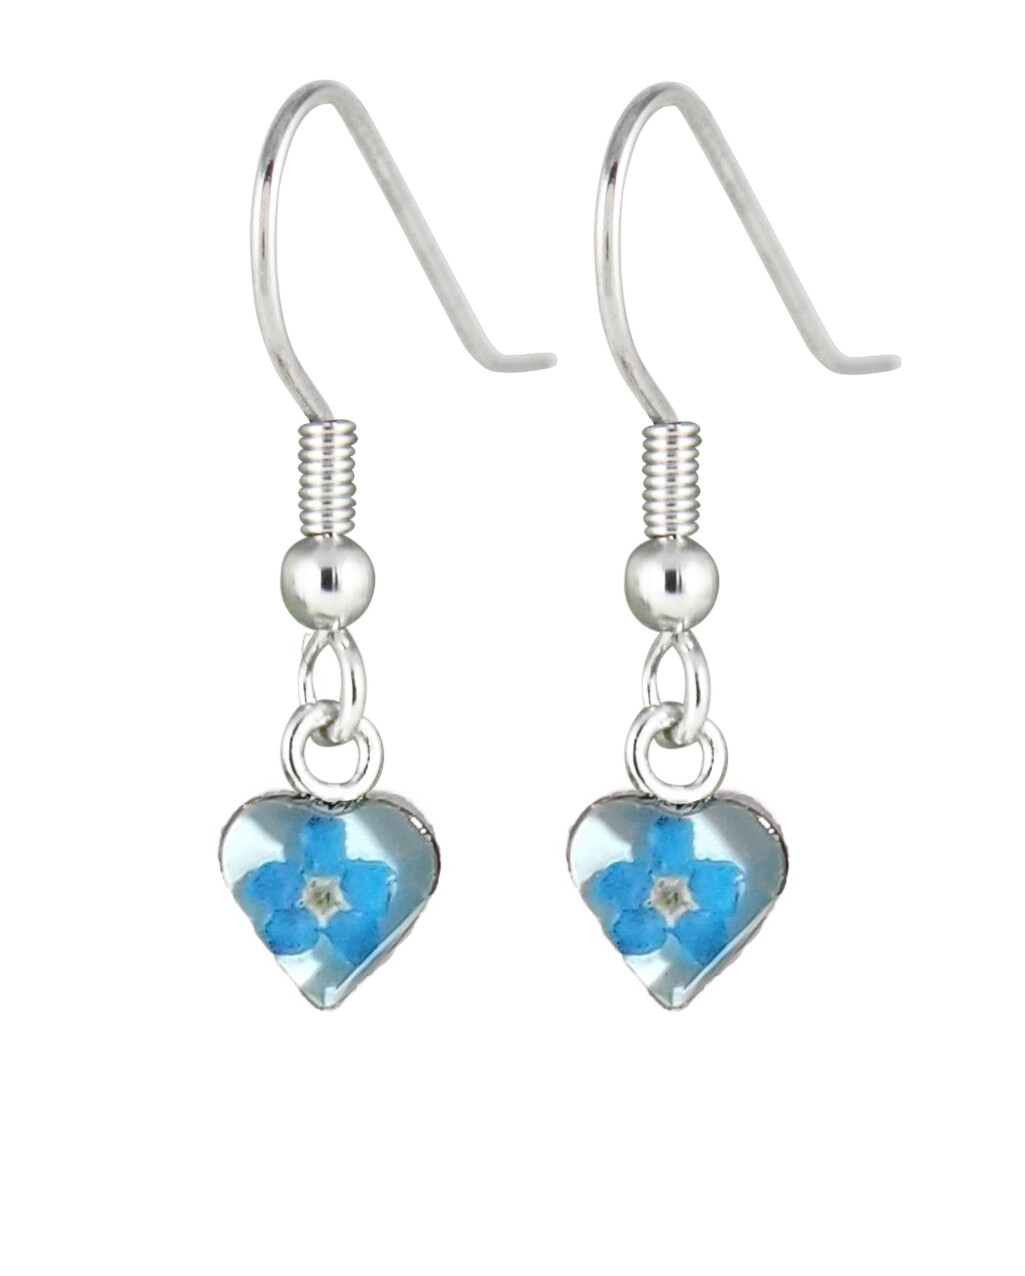 Forget-Me-Not, Mini Heart Earrings, White Background